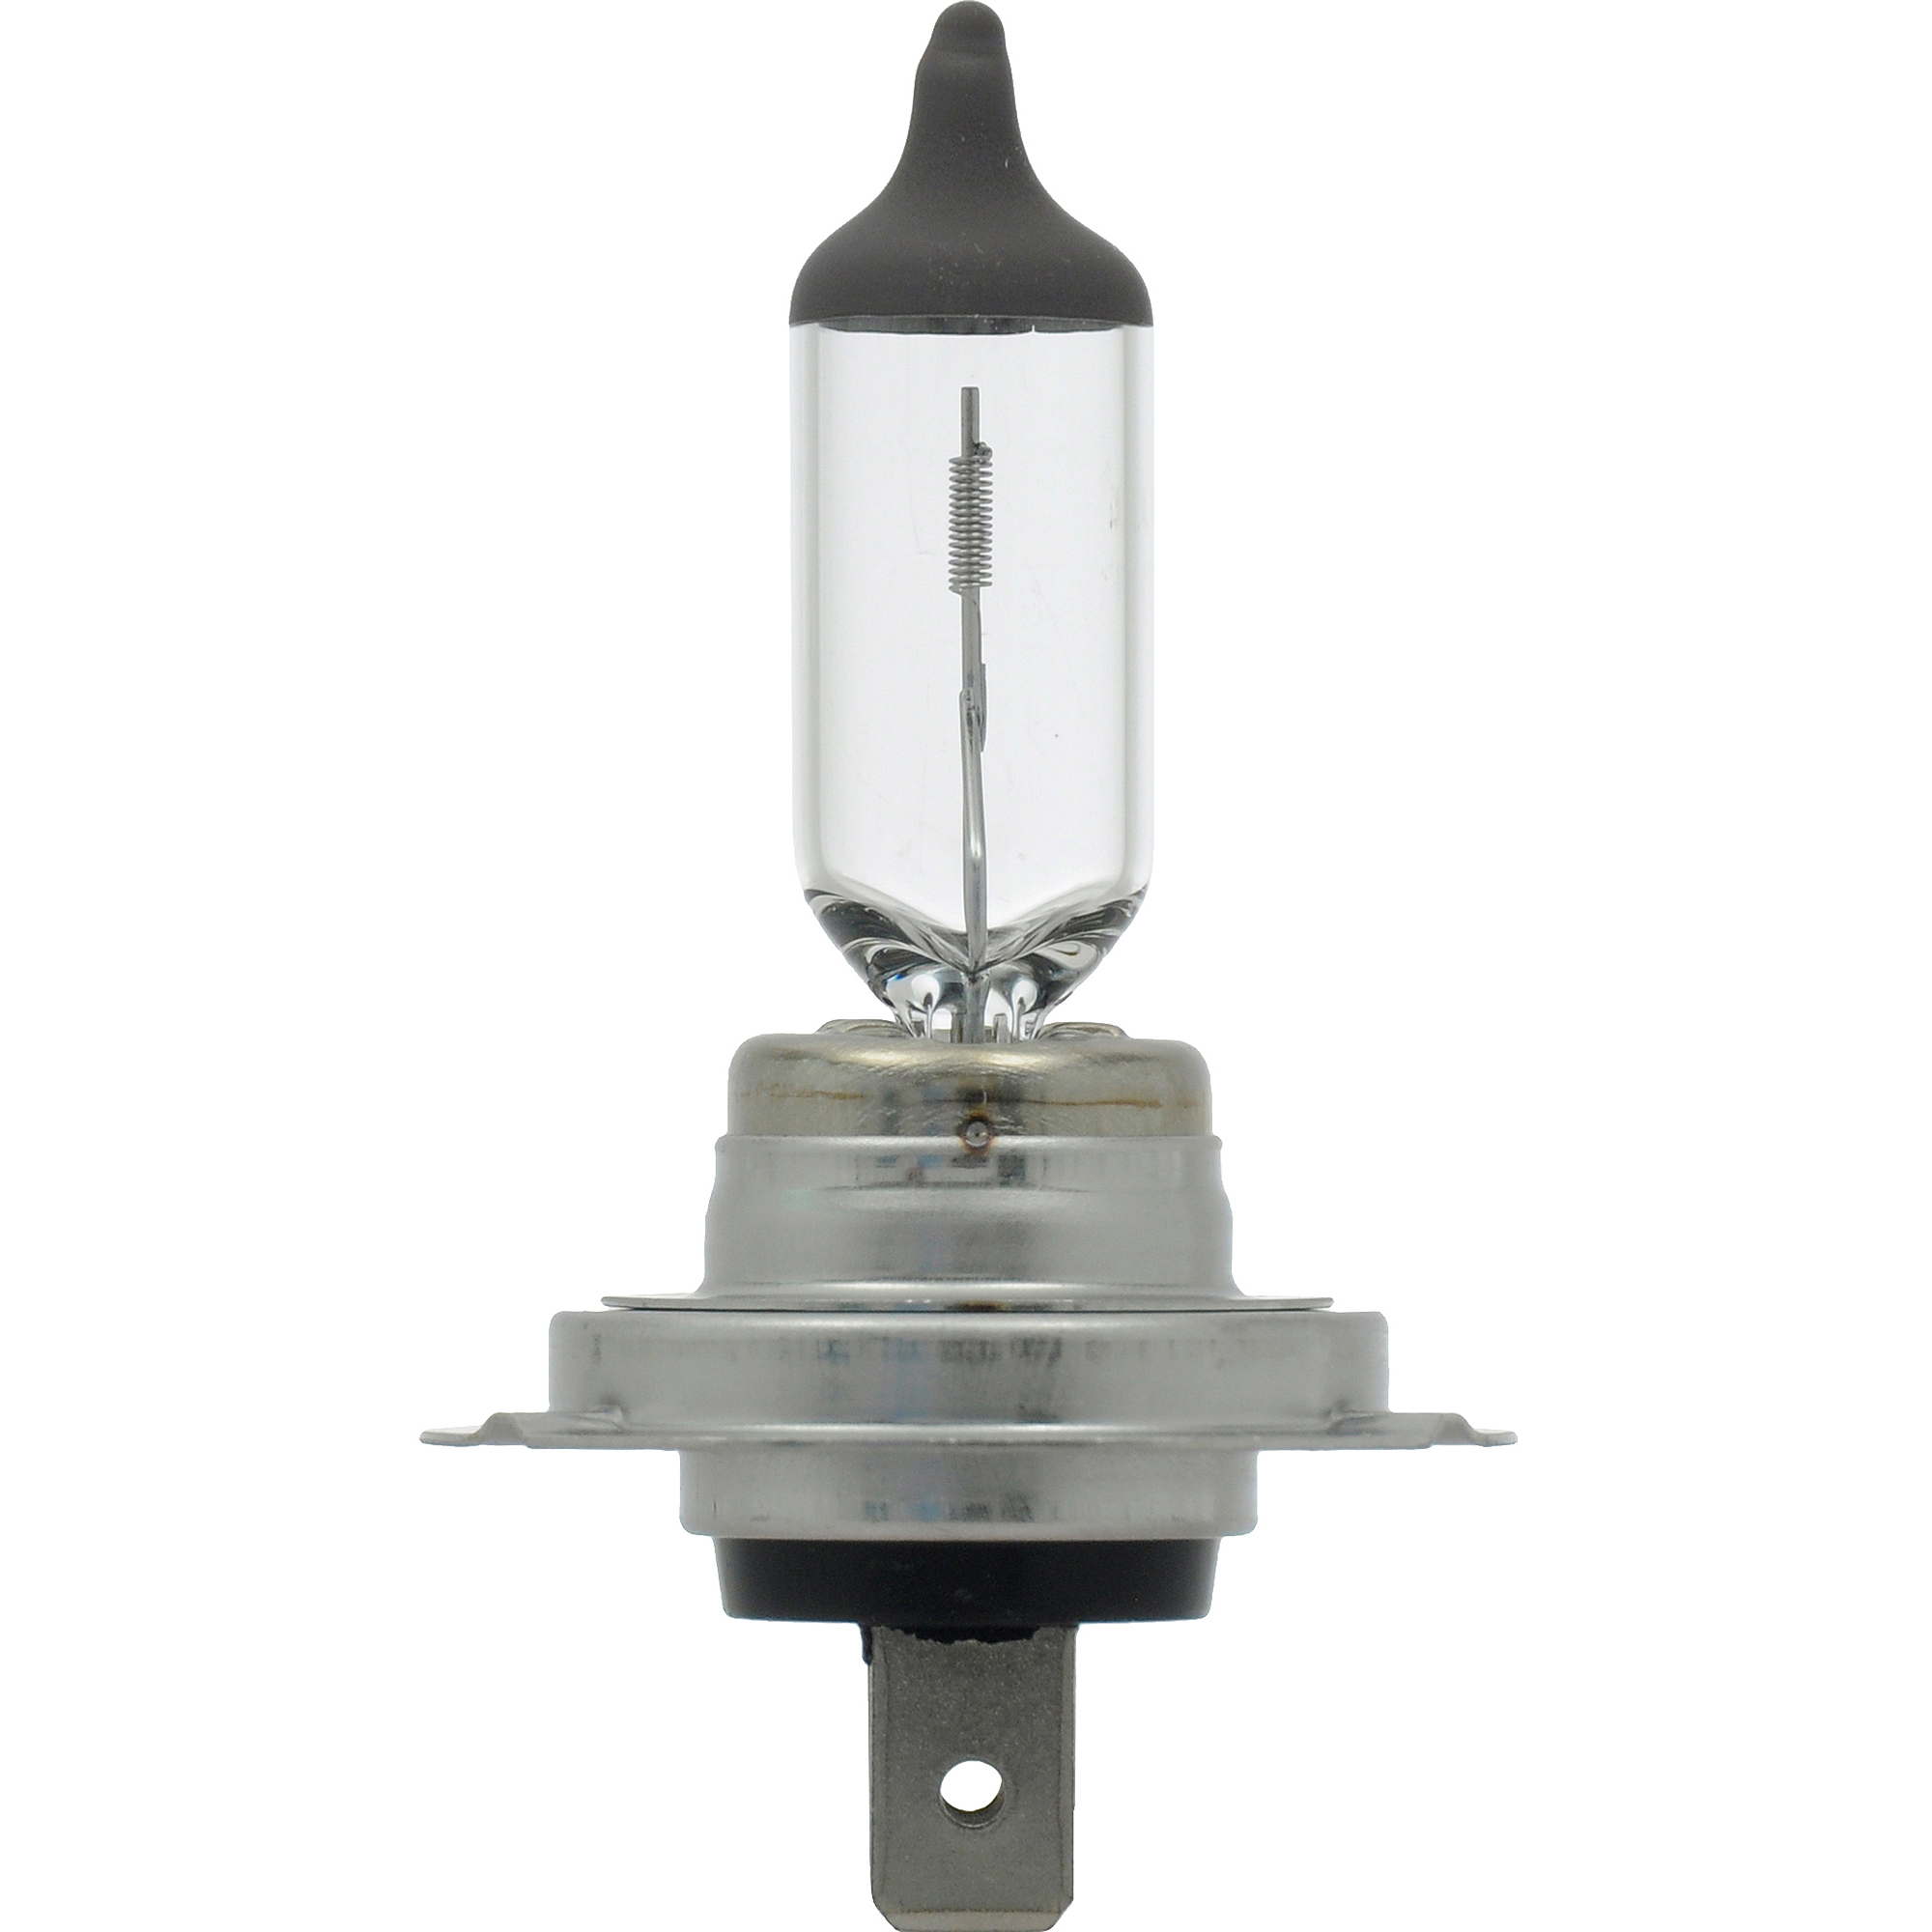 Sylvania H7 Basic Headlight, Contains 1 Bulb